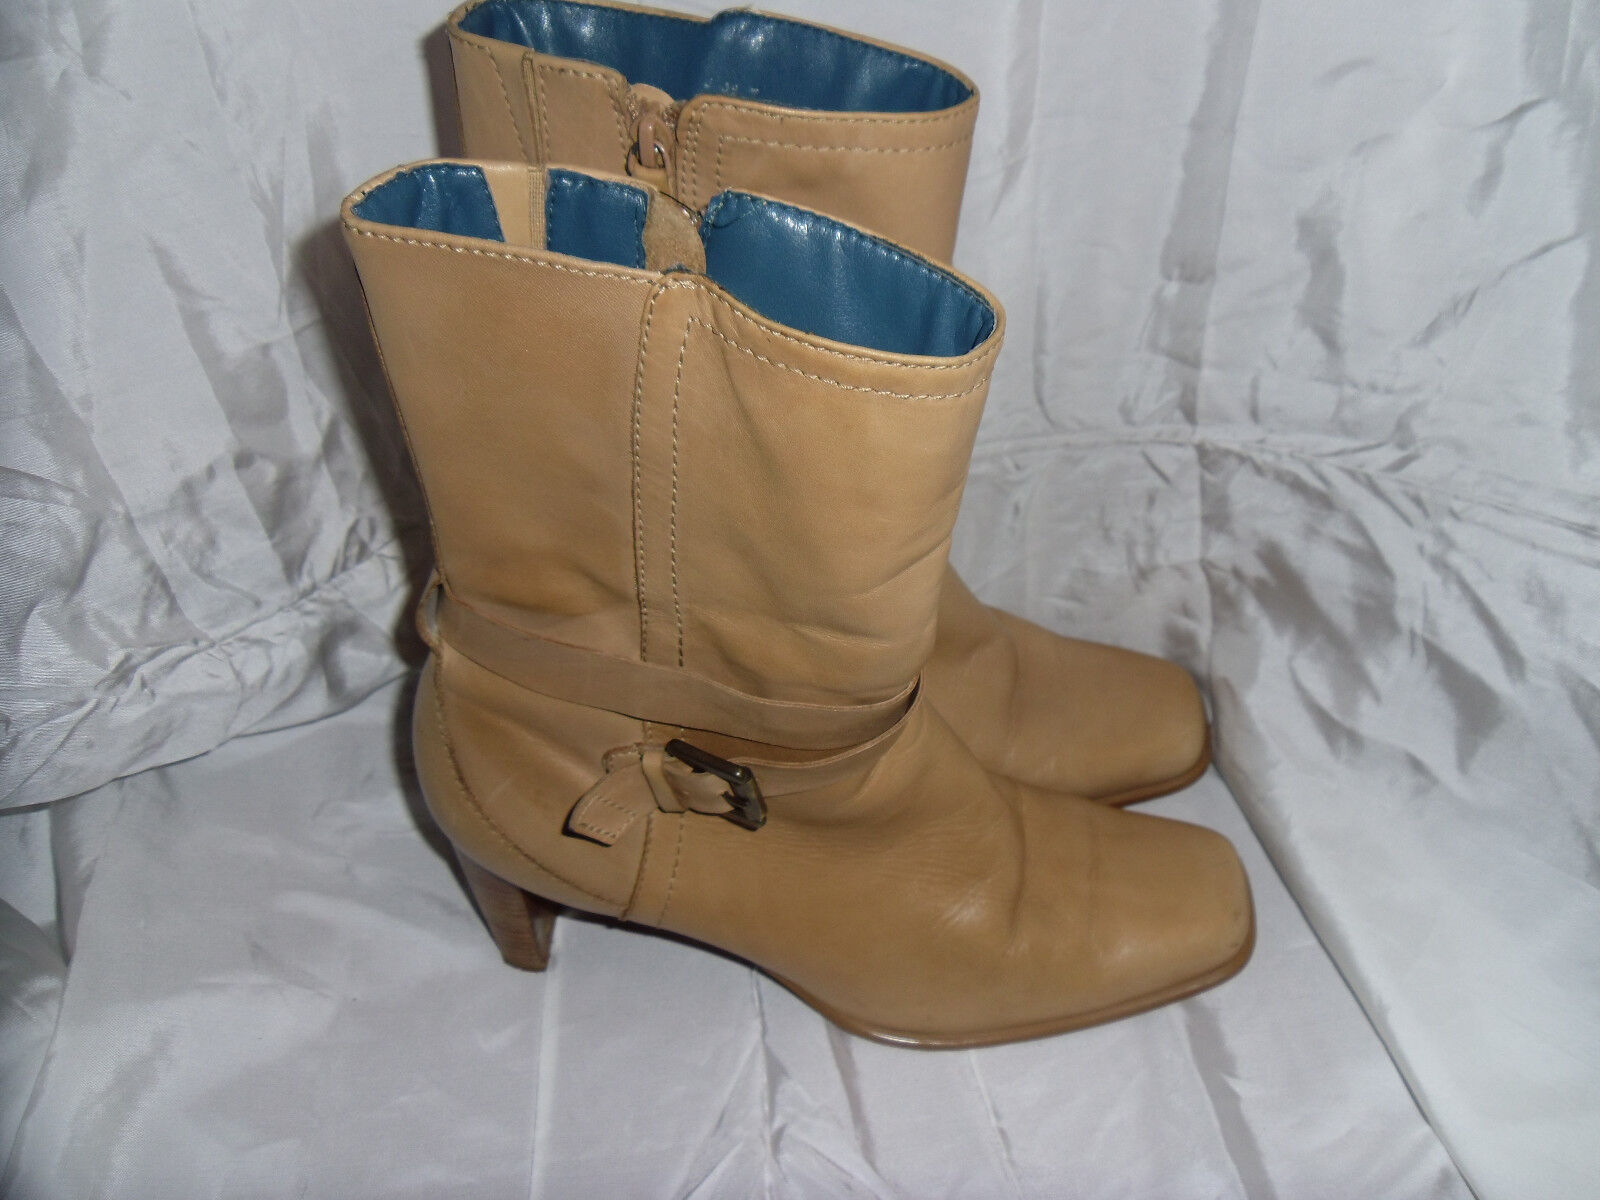 CLARKS WOMEN'S BEIGE LEATHER ZIP UP ANKLE BOOT SIZE VGC